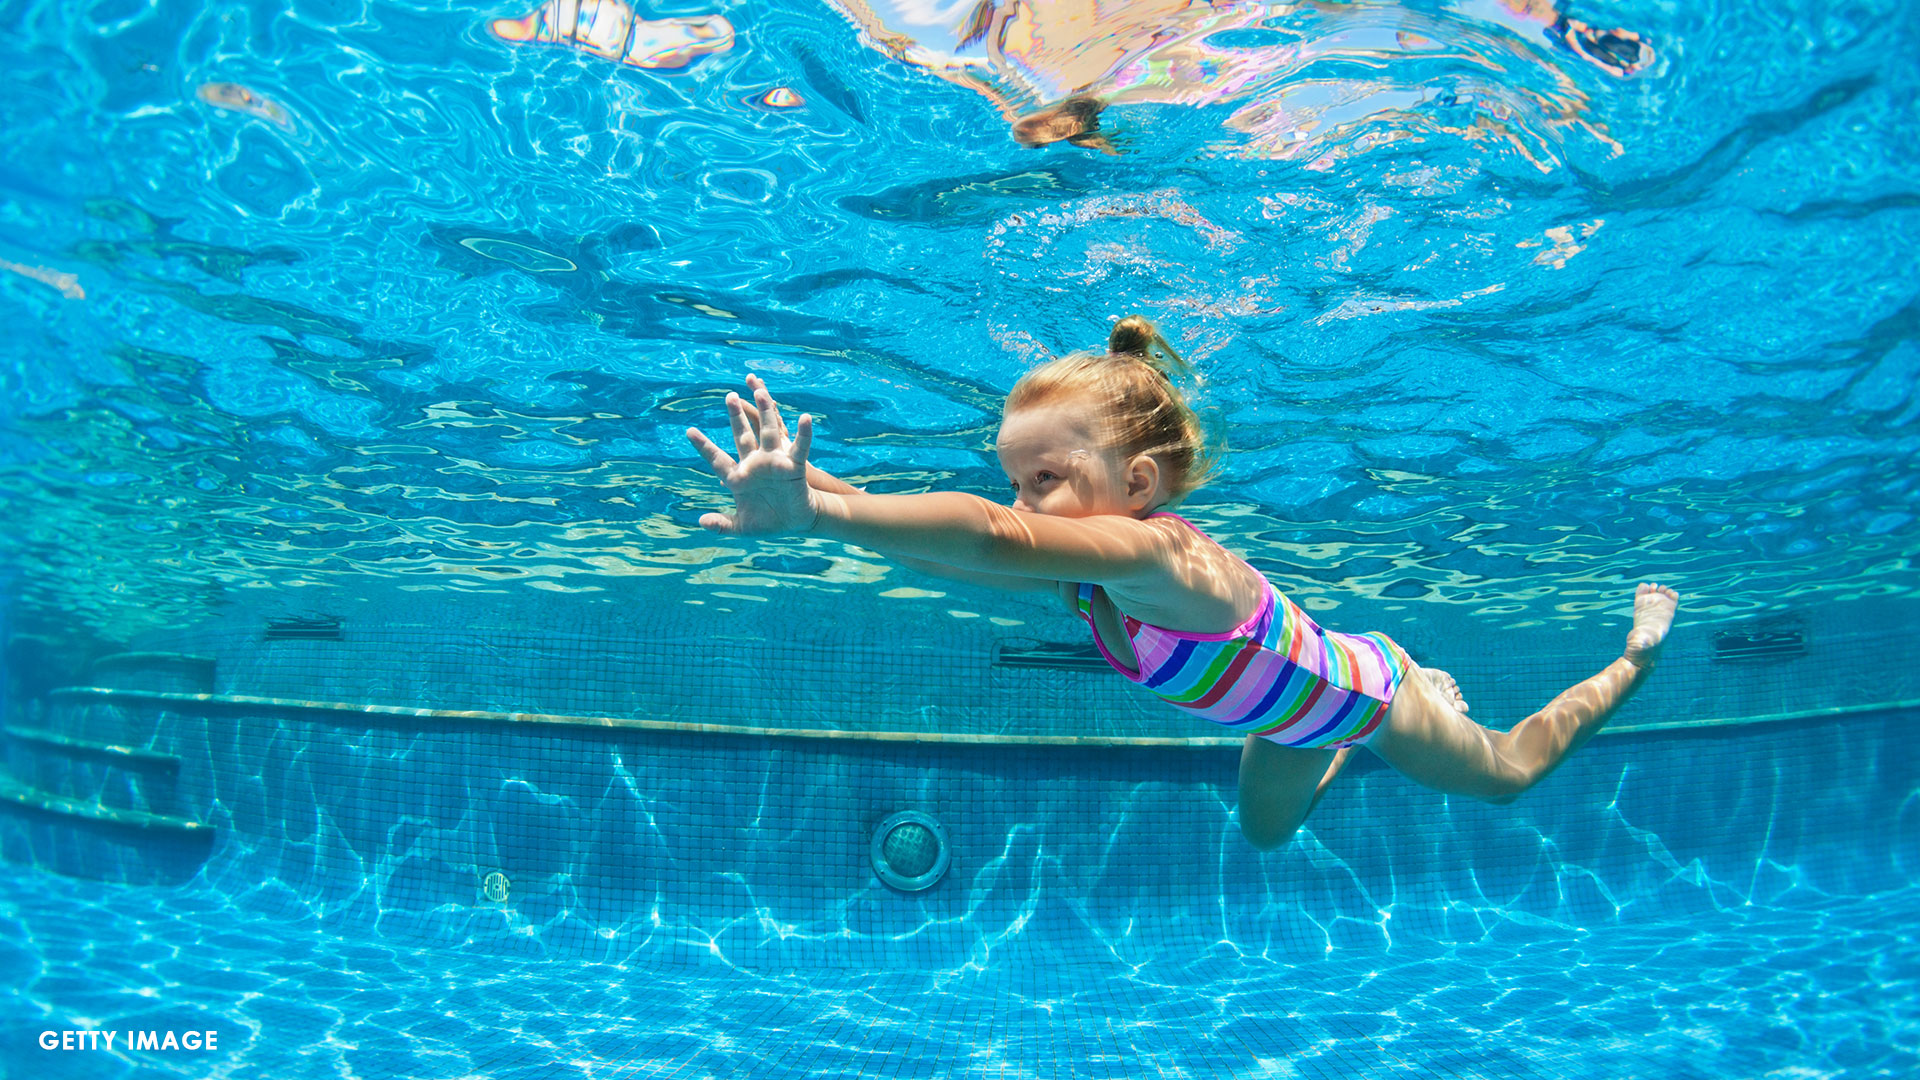 swimming-child_1558643593415.jpg